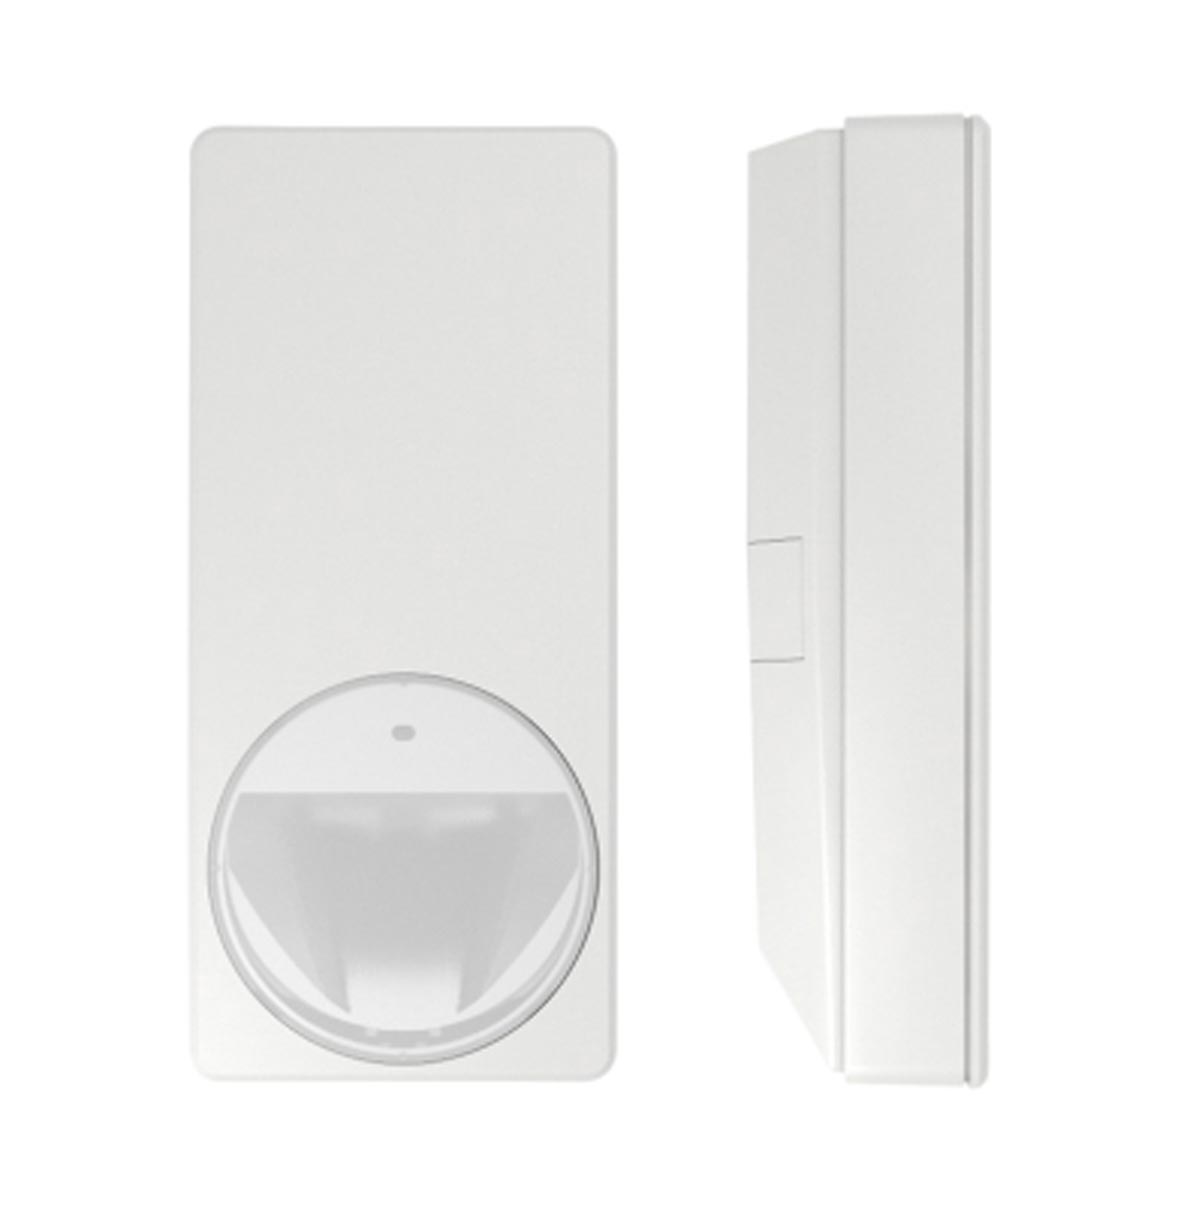 motion detectors infrared detector motion sensor infrared sensor dual tech motion sensor security sensor intrustion sensor